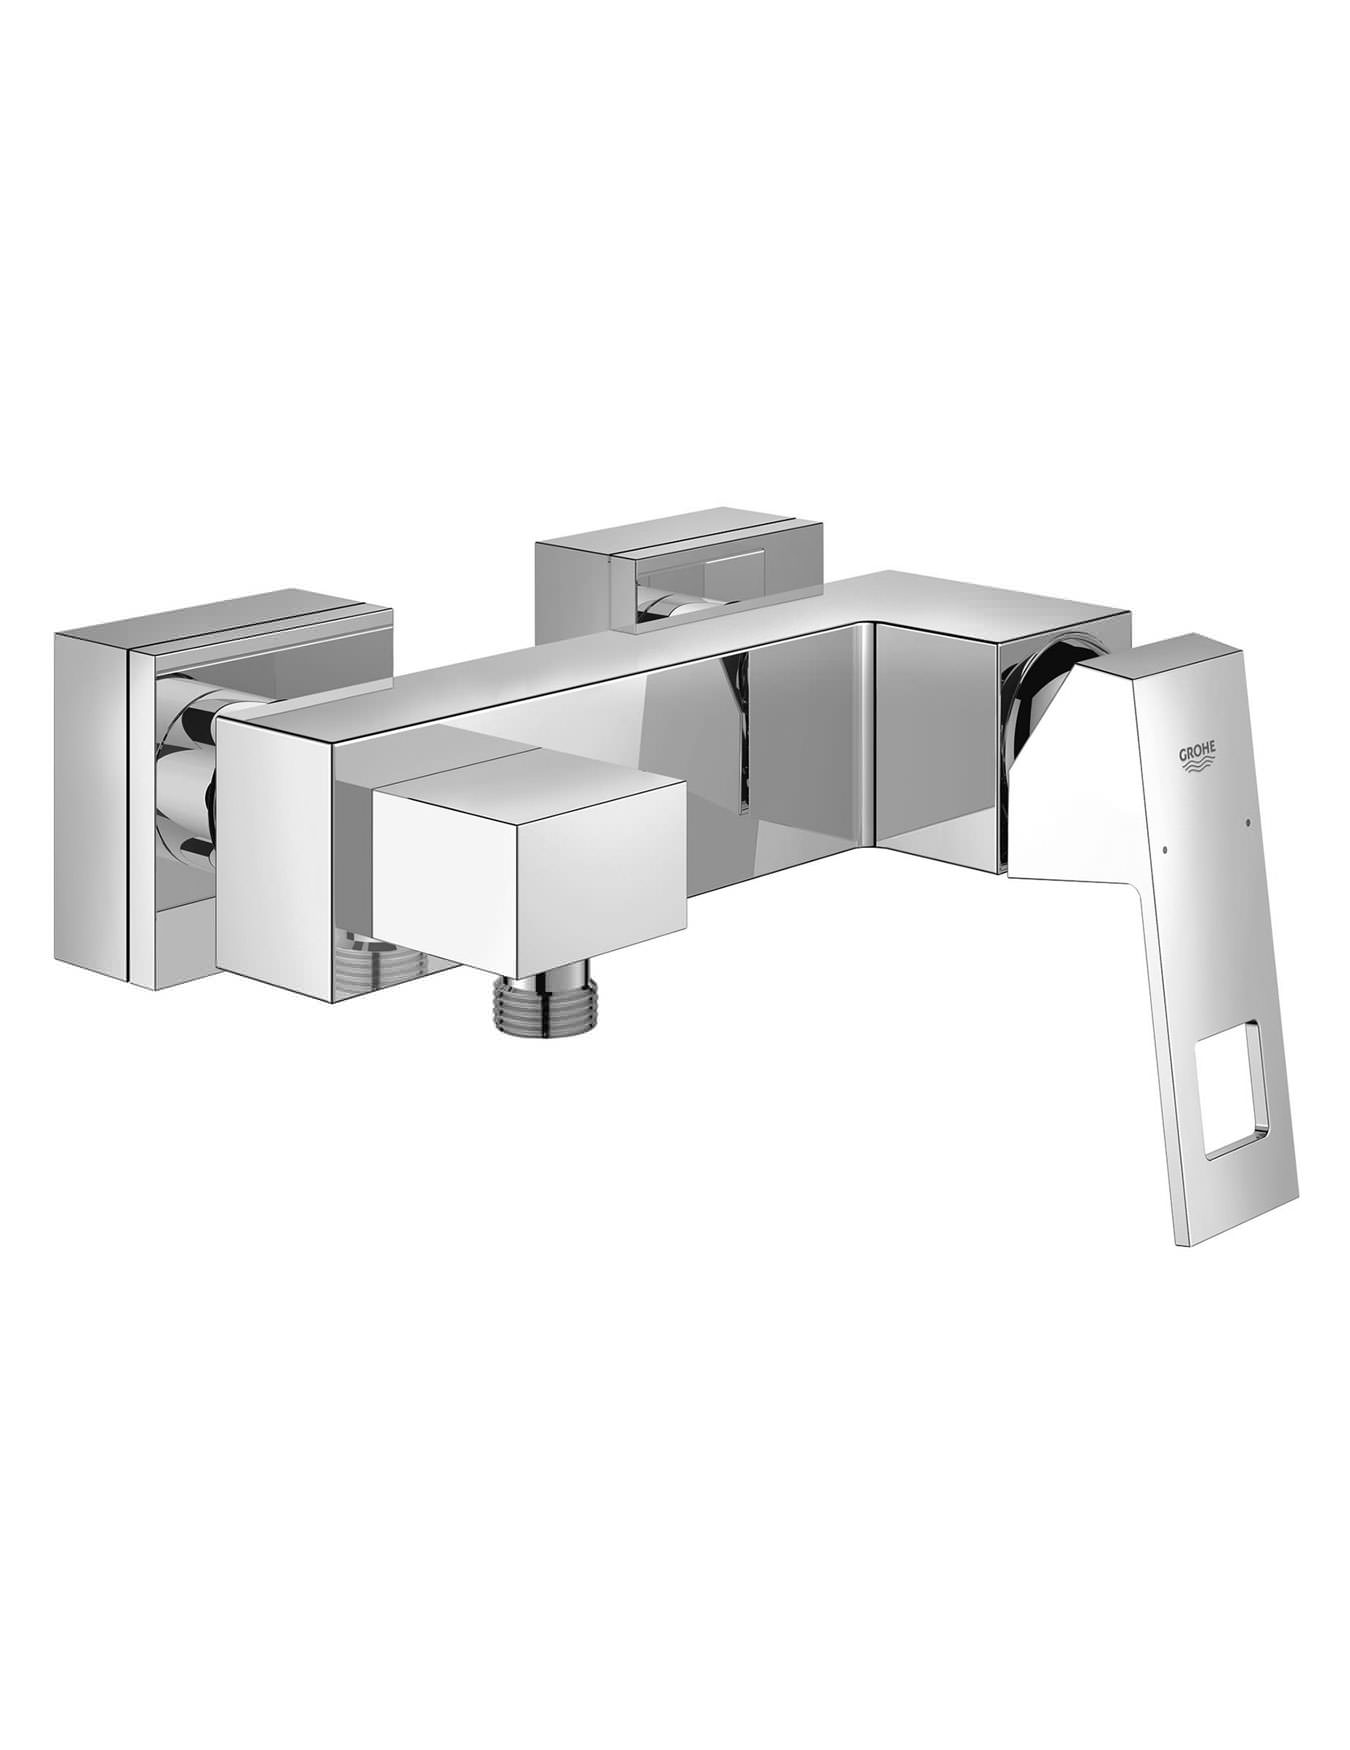 Captivating Grohe Eurocube Wall Mounted Exposed Single Lever Shower Mixer Valve